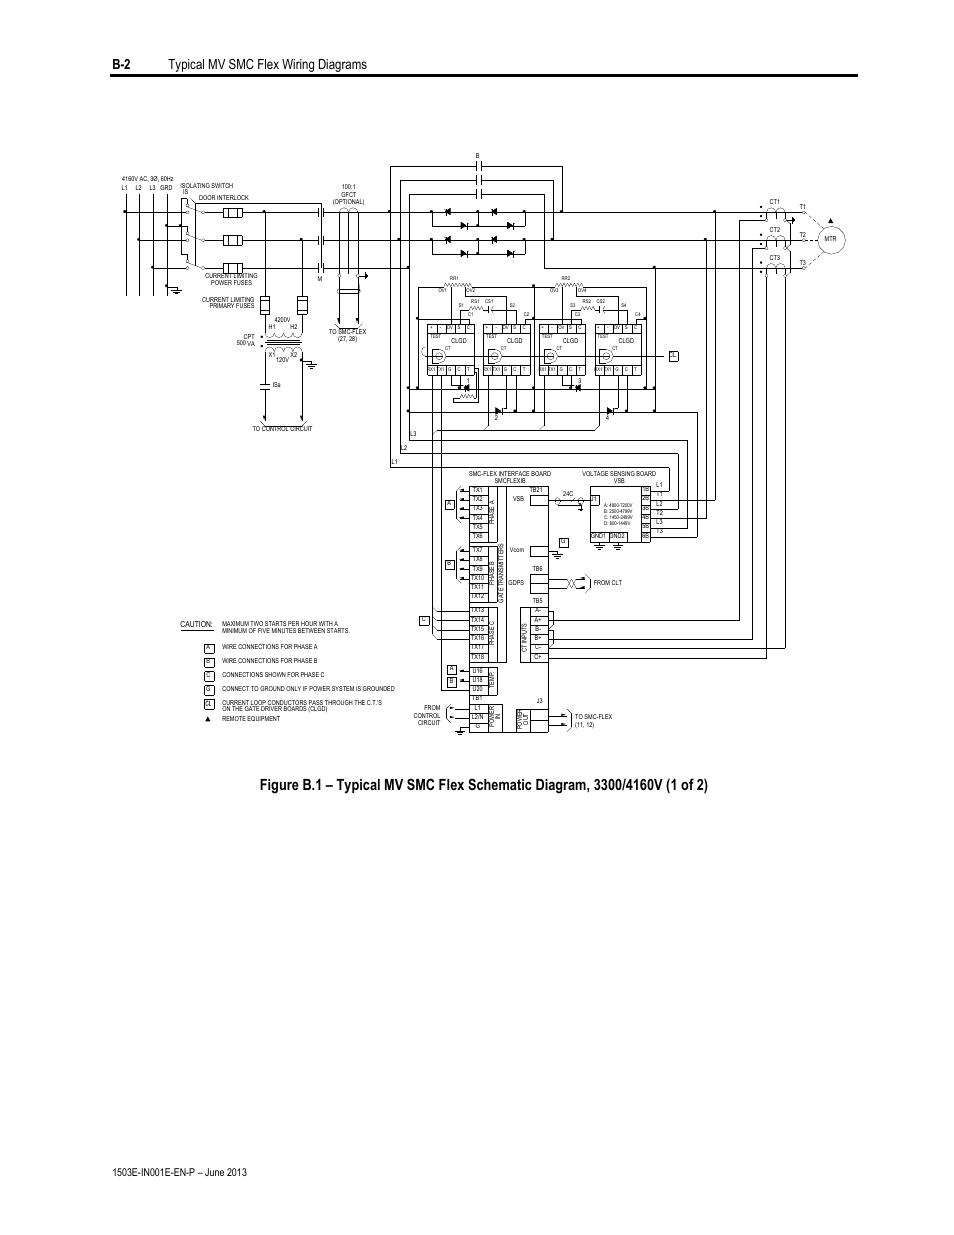 medium resolution of b 2 typical mv smc flex wiring diagrams rockwell automation mv smc chevy truck flex b